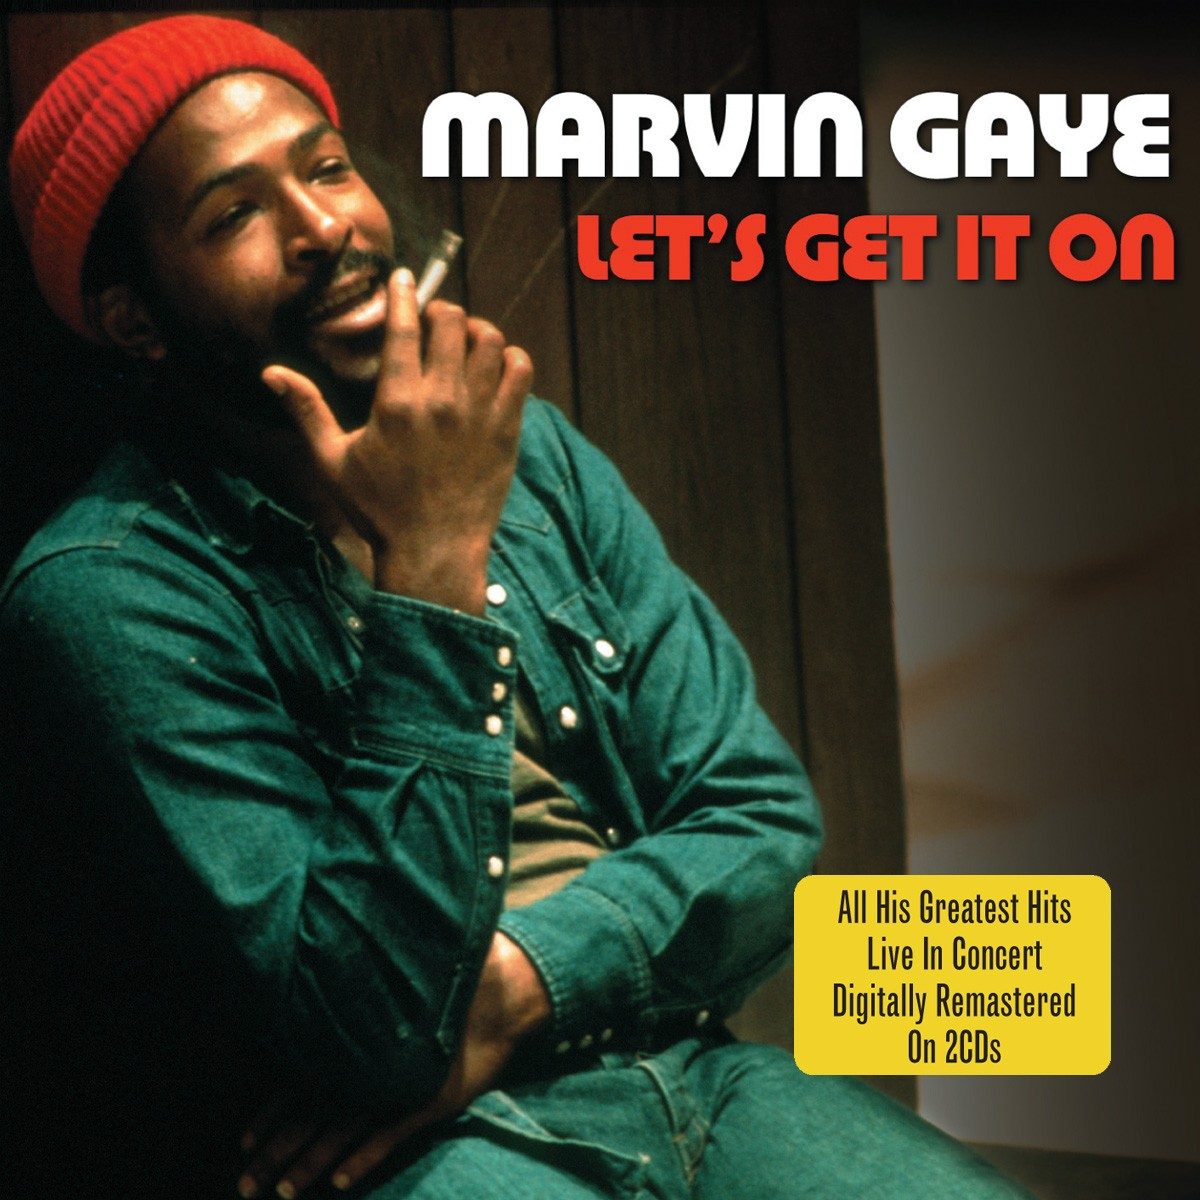 Marvin gaye lets get it on song